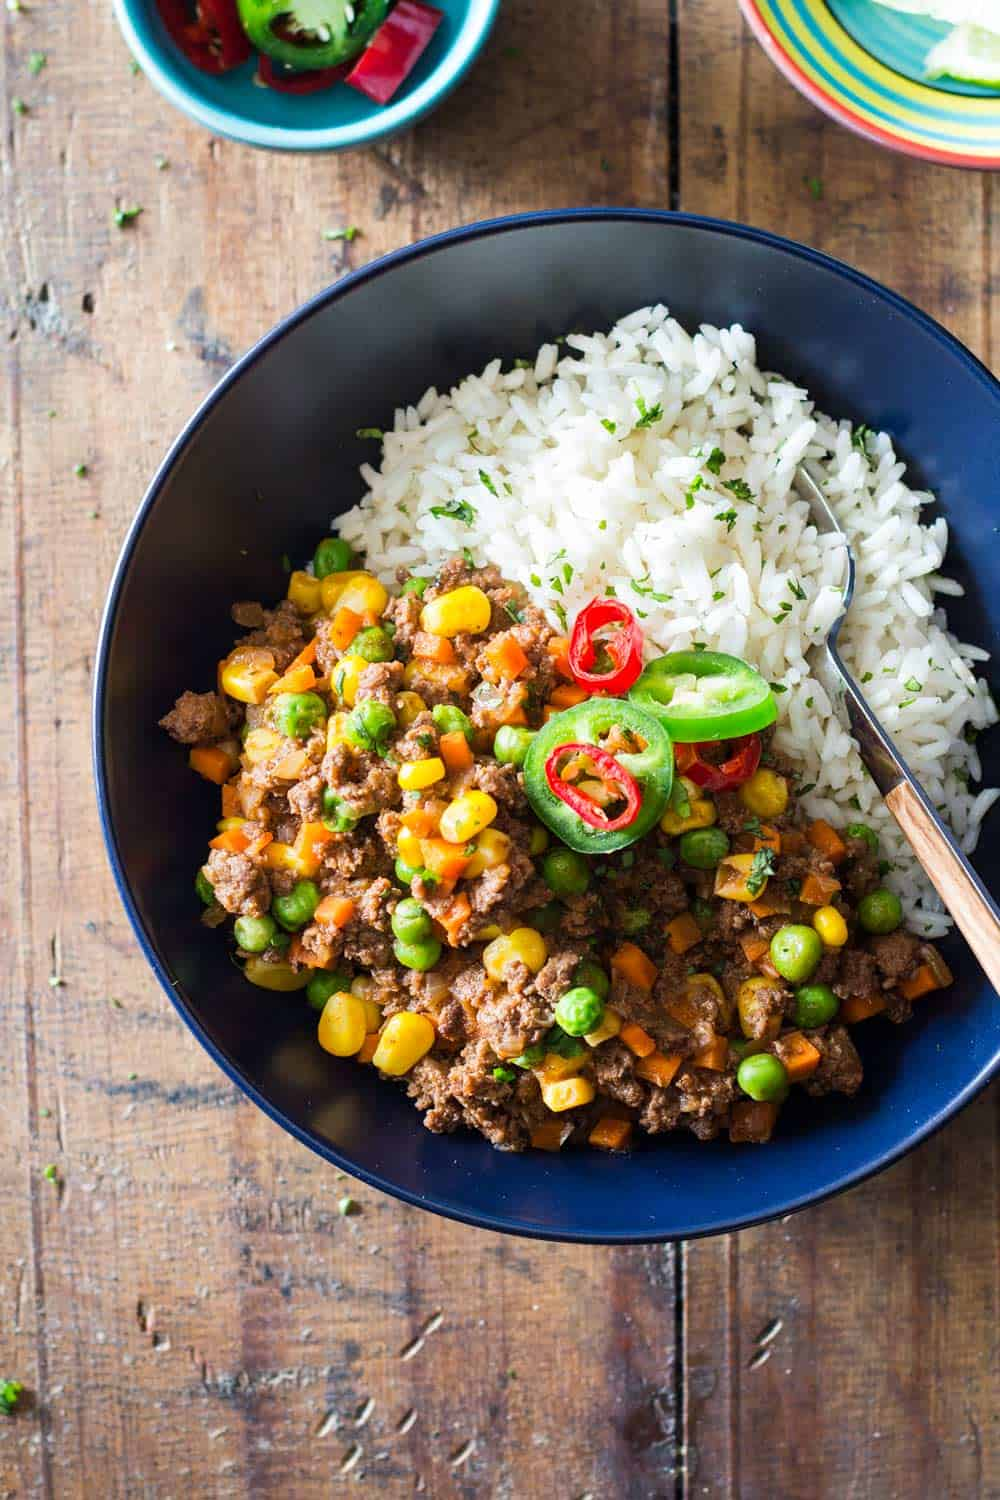 top-down view of picadillo, mexican recipe, served over white rice in a blue bowl.